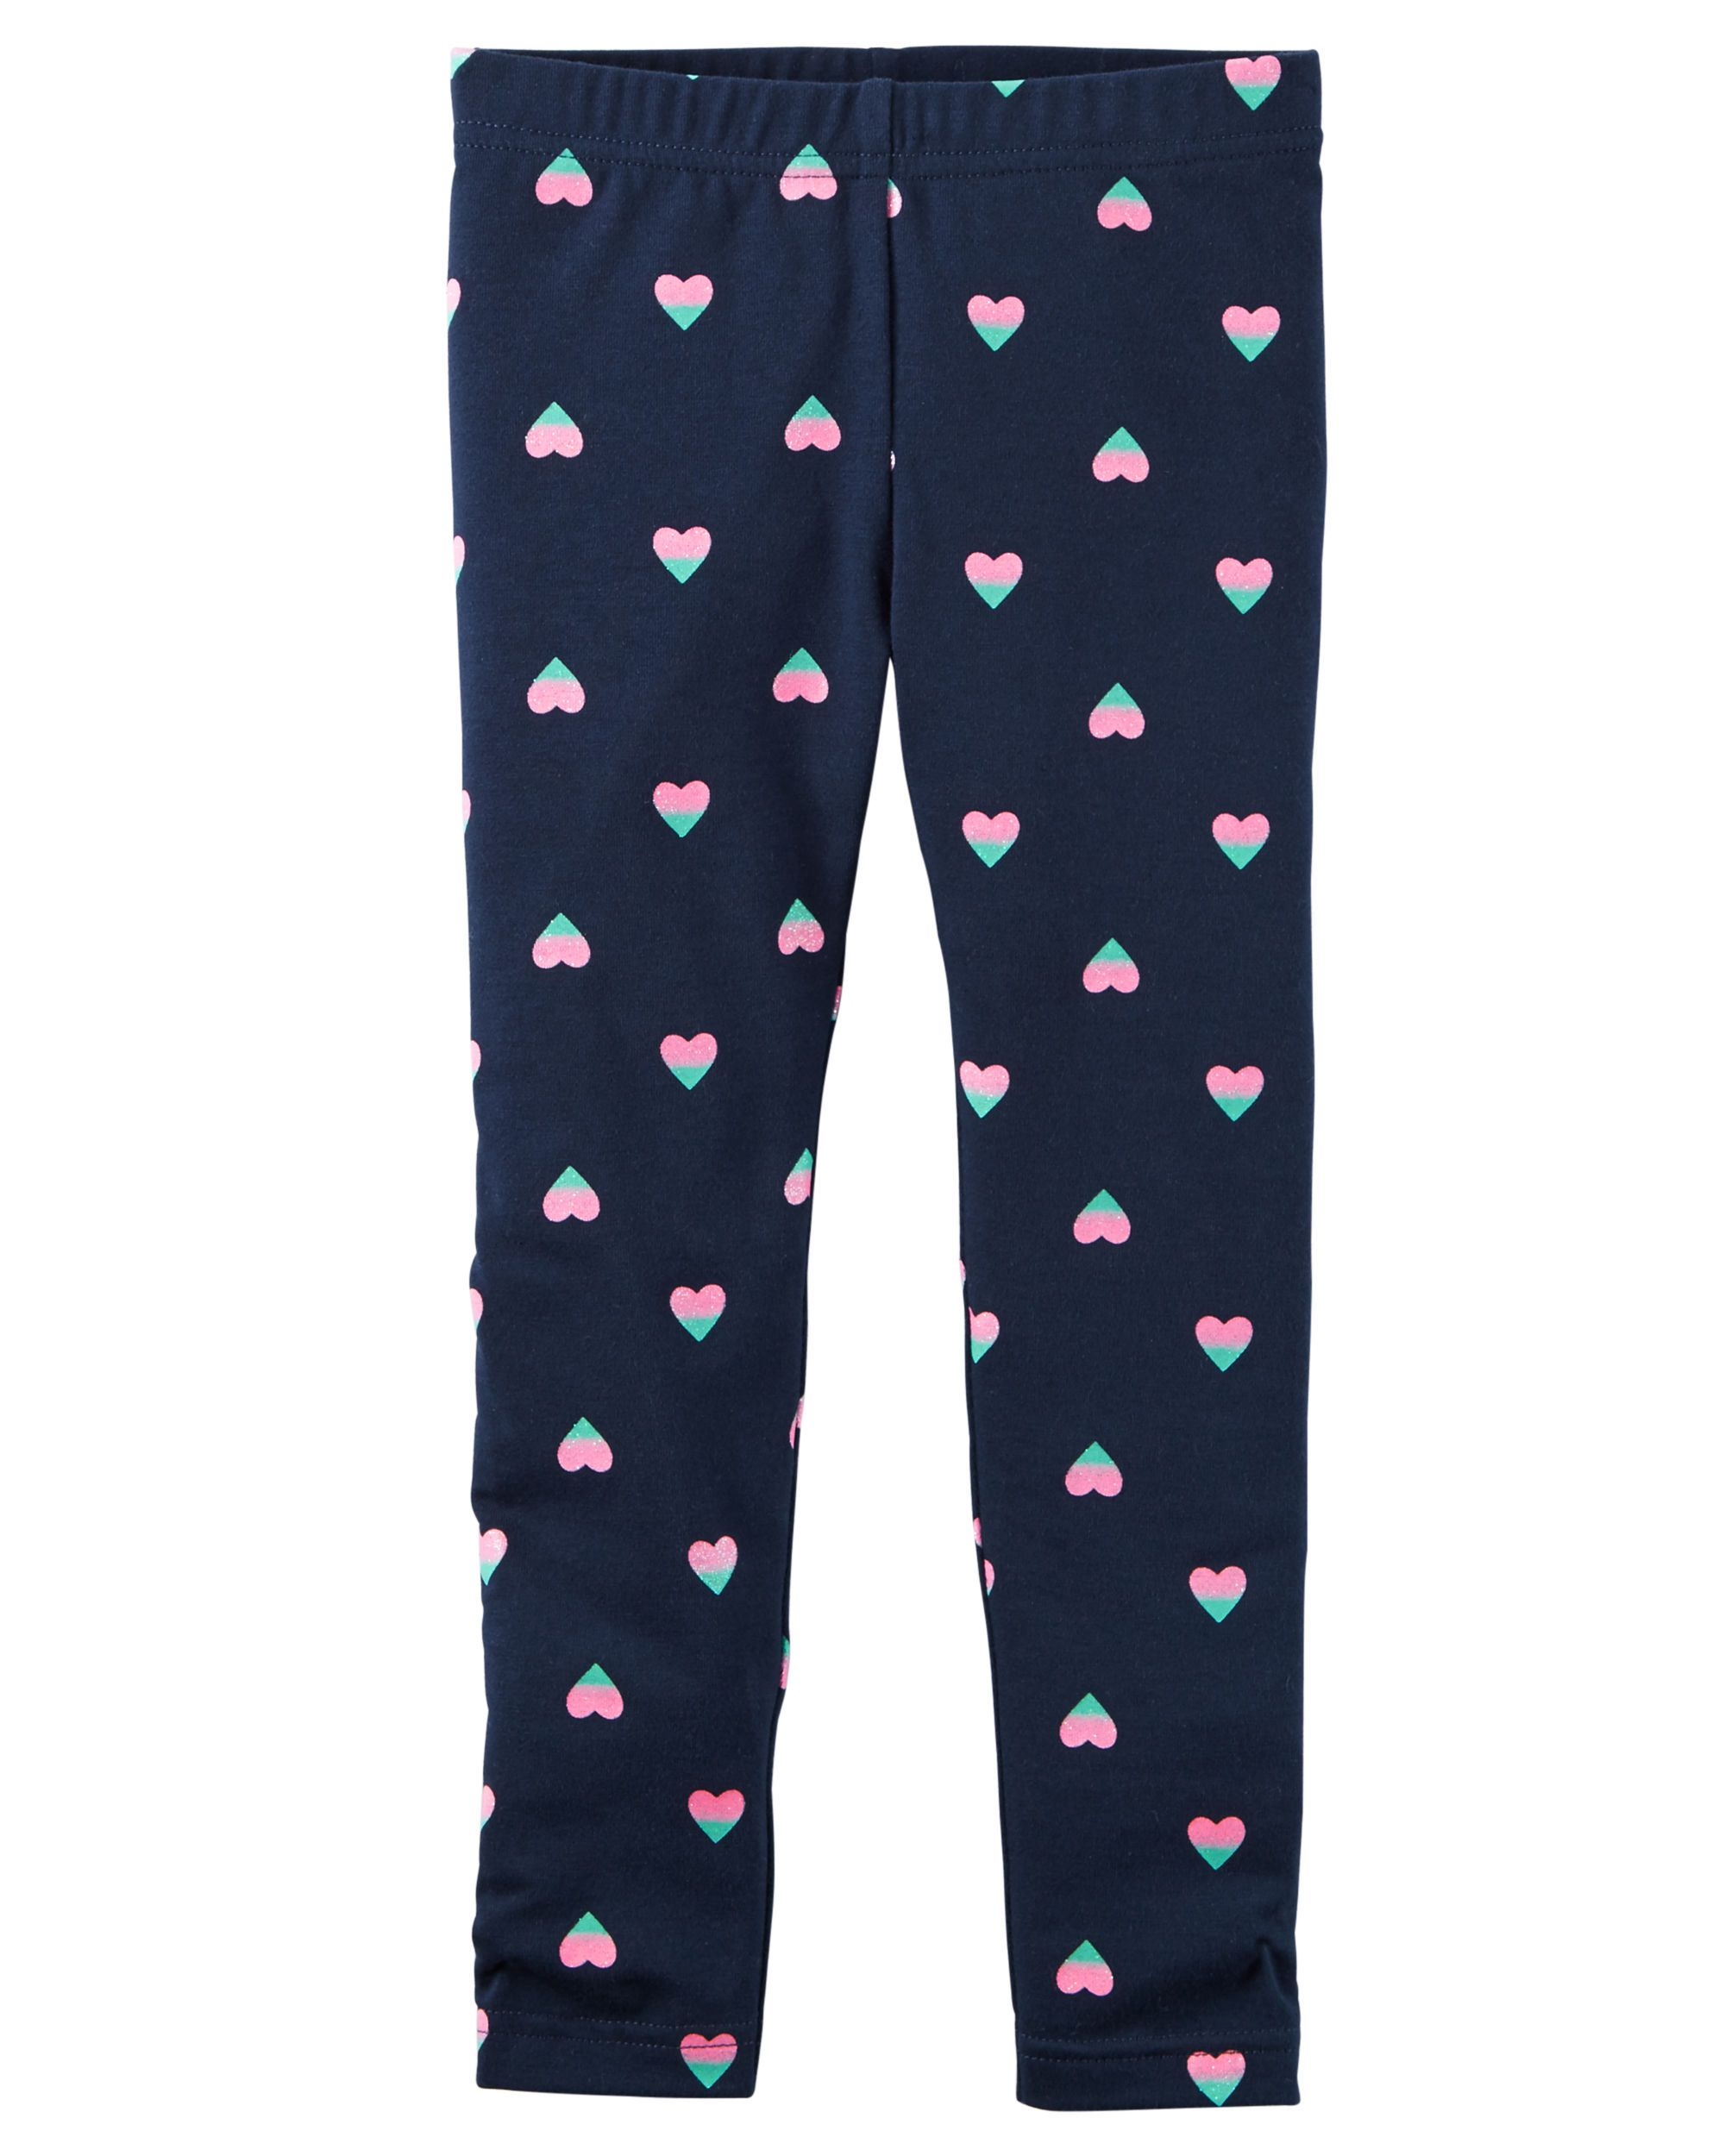 245327e79d5c05 Kid Girl Heart Print Leggings from Carters.com. Shop clothing & accessories  from a trusted name in kids, toddlers, and baby clothes.